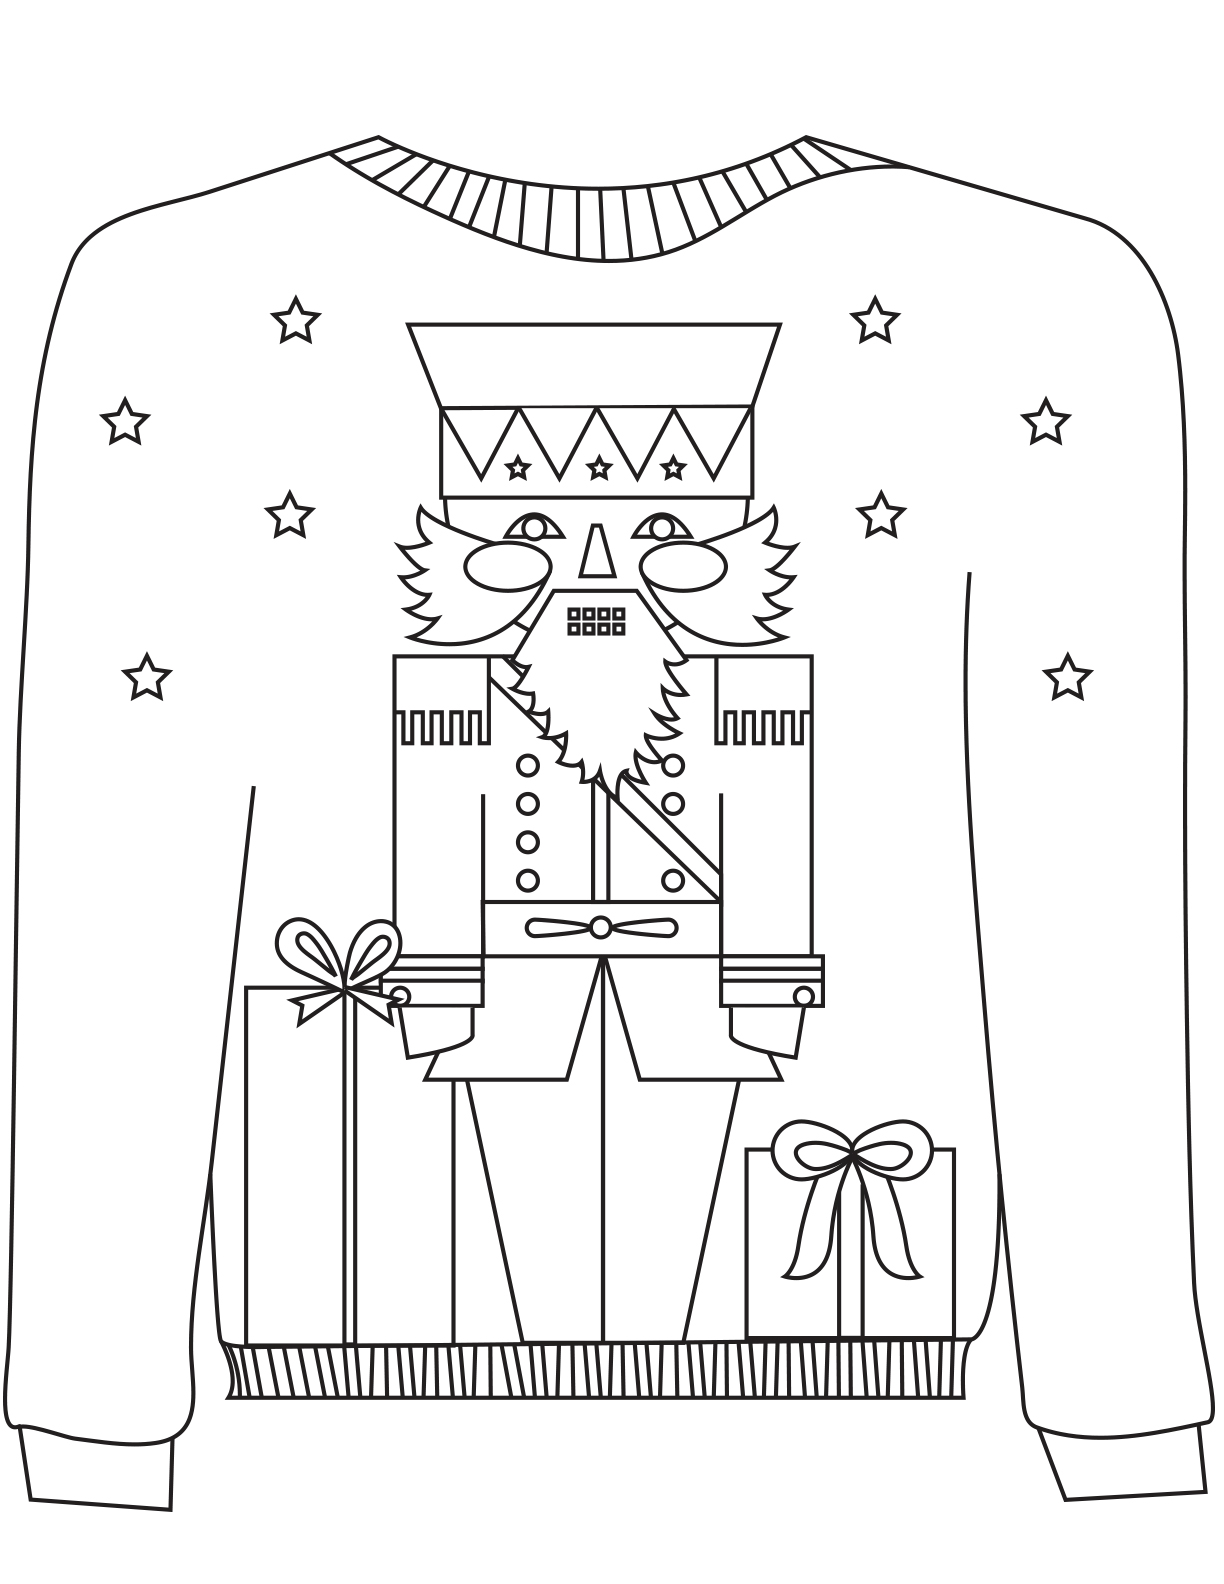 christmas sweater colouring mum in the madhouse coloring nut neon school supplies craft coloring pages Ugly Christmas Sweater Coloring Page